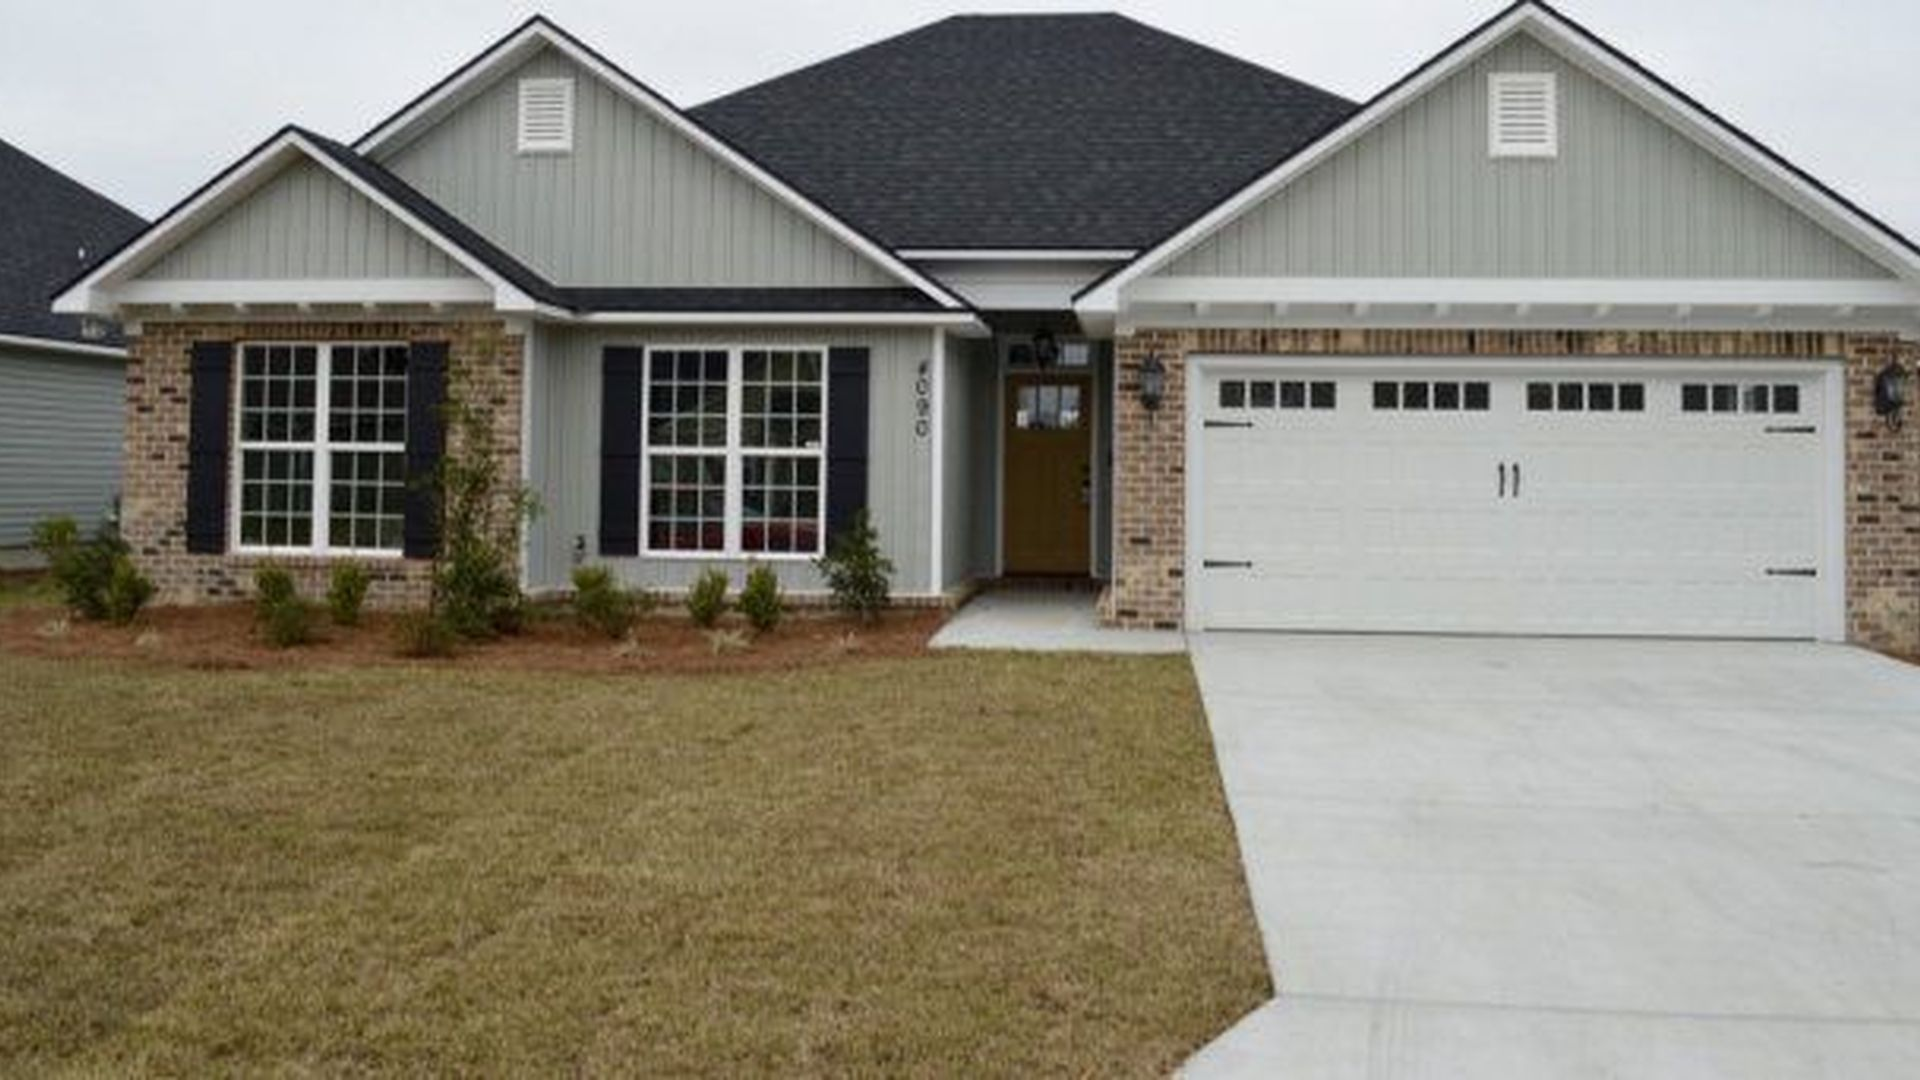 Garage Apartment For Rent Valdosta Ga 31605 Single Family Homes For Sale 180 Homes Zillow